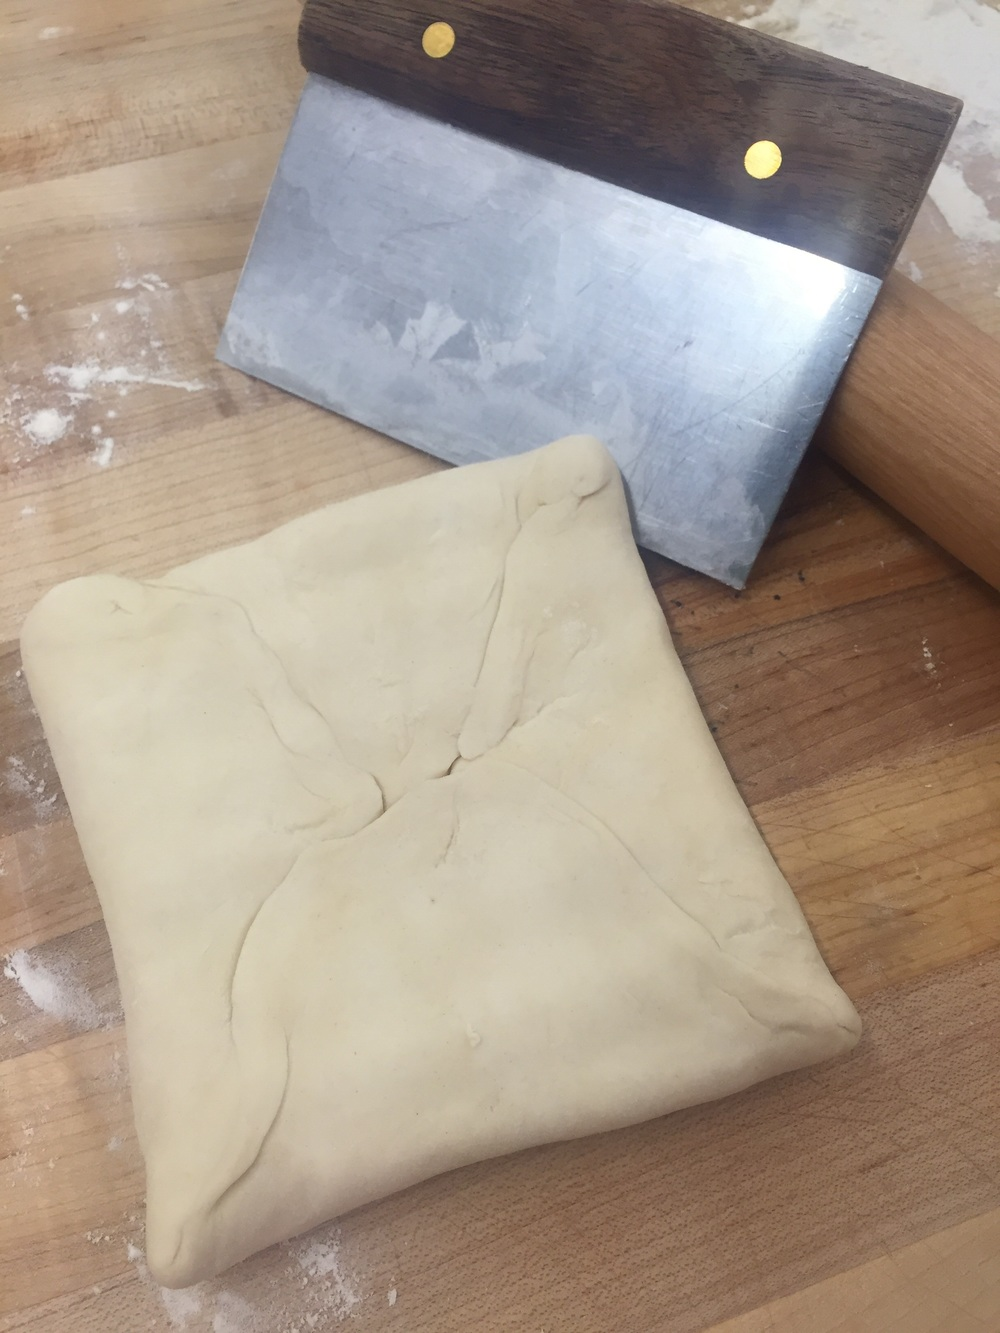 A perfect puff pastry dough package - no butter peeking out anywhere!